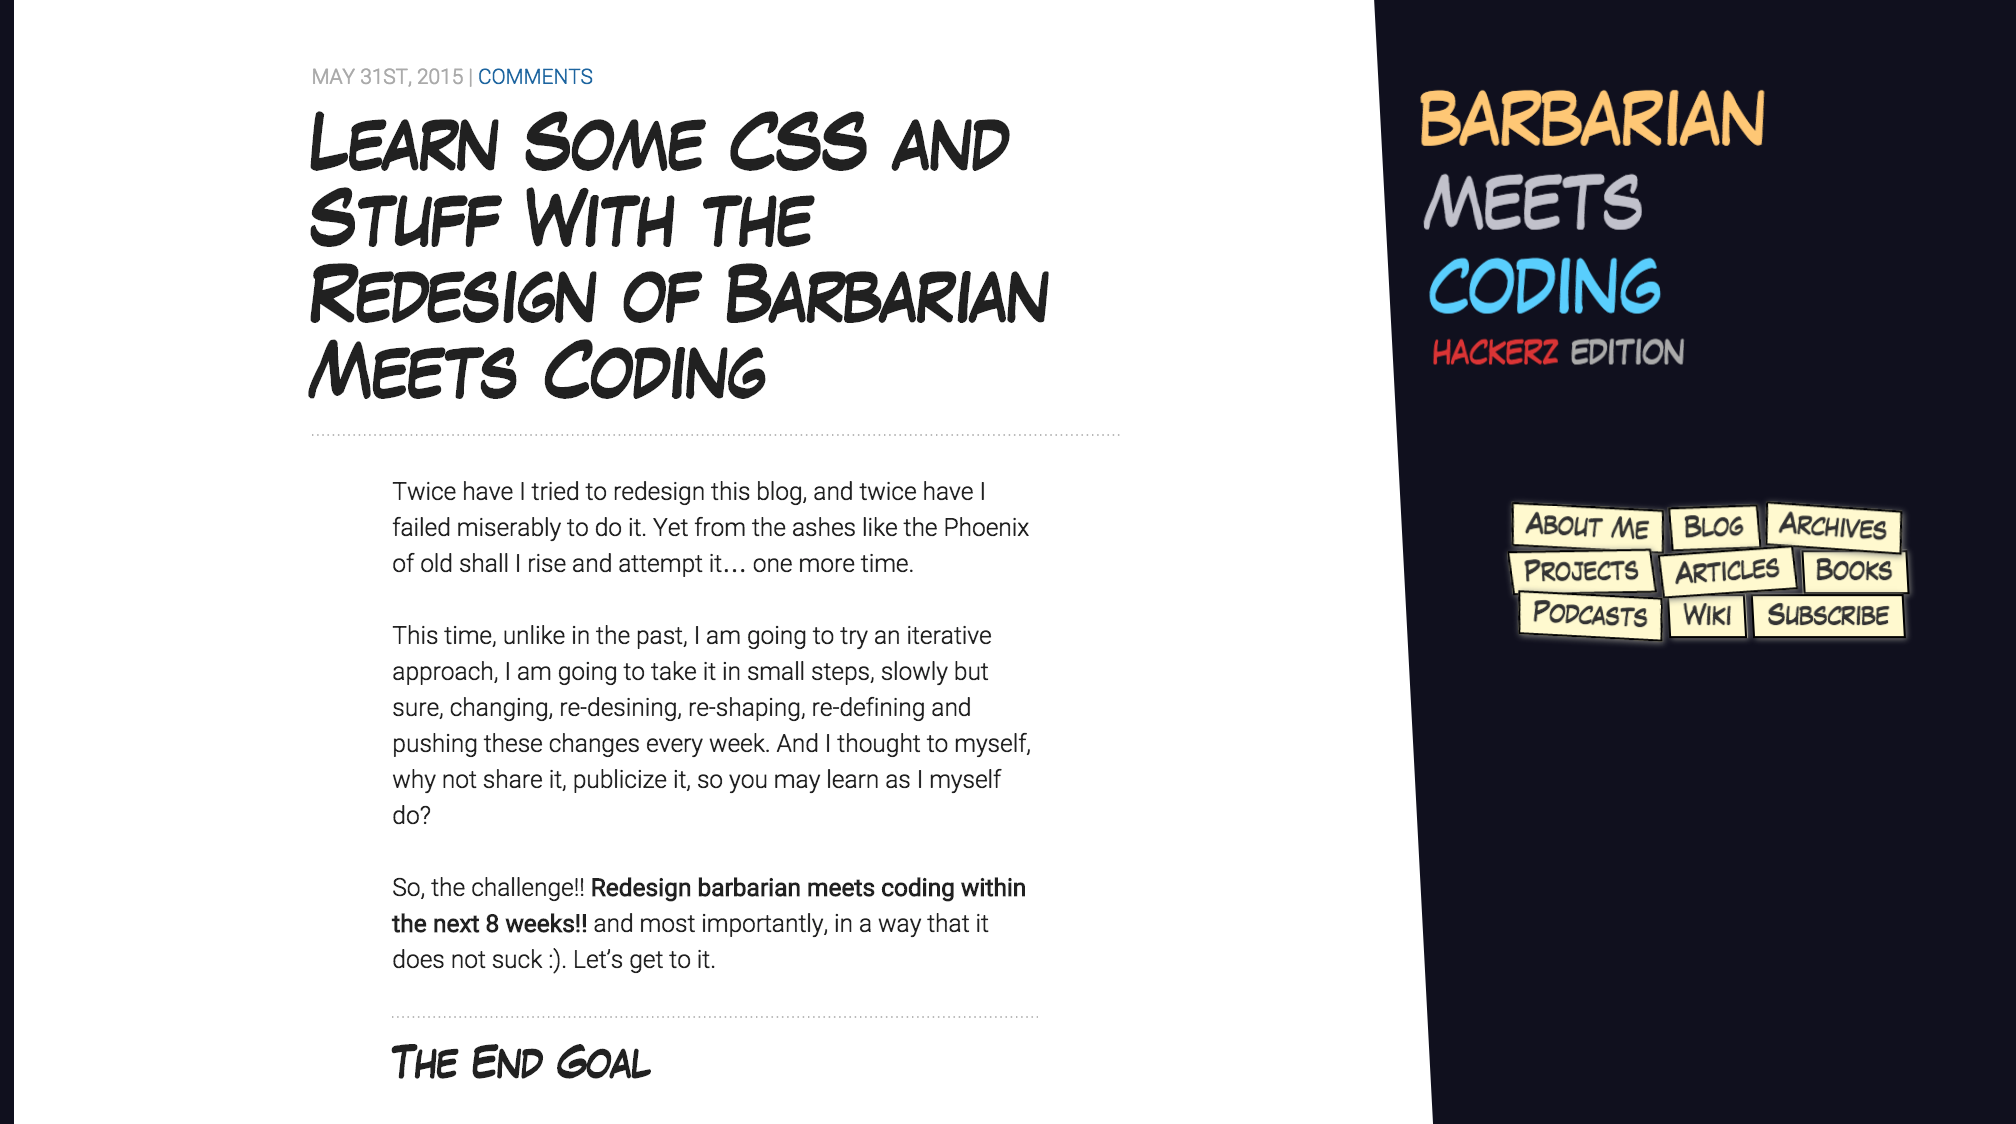 Barbarian Meets Coding Redesign version 001 of an article